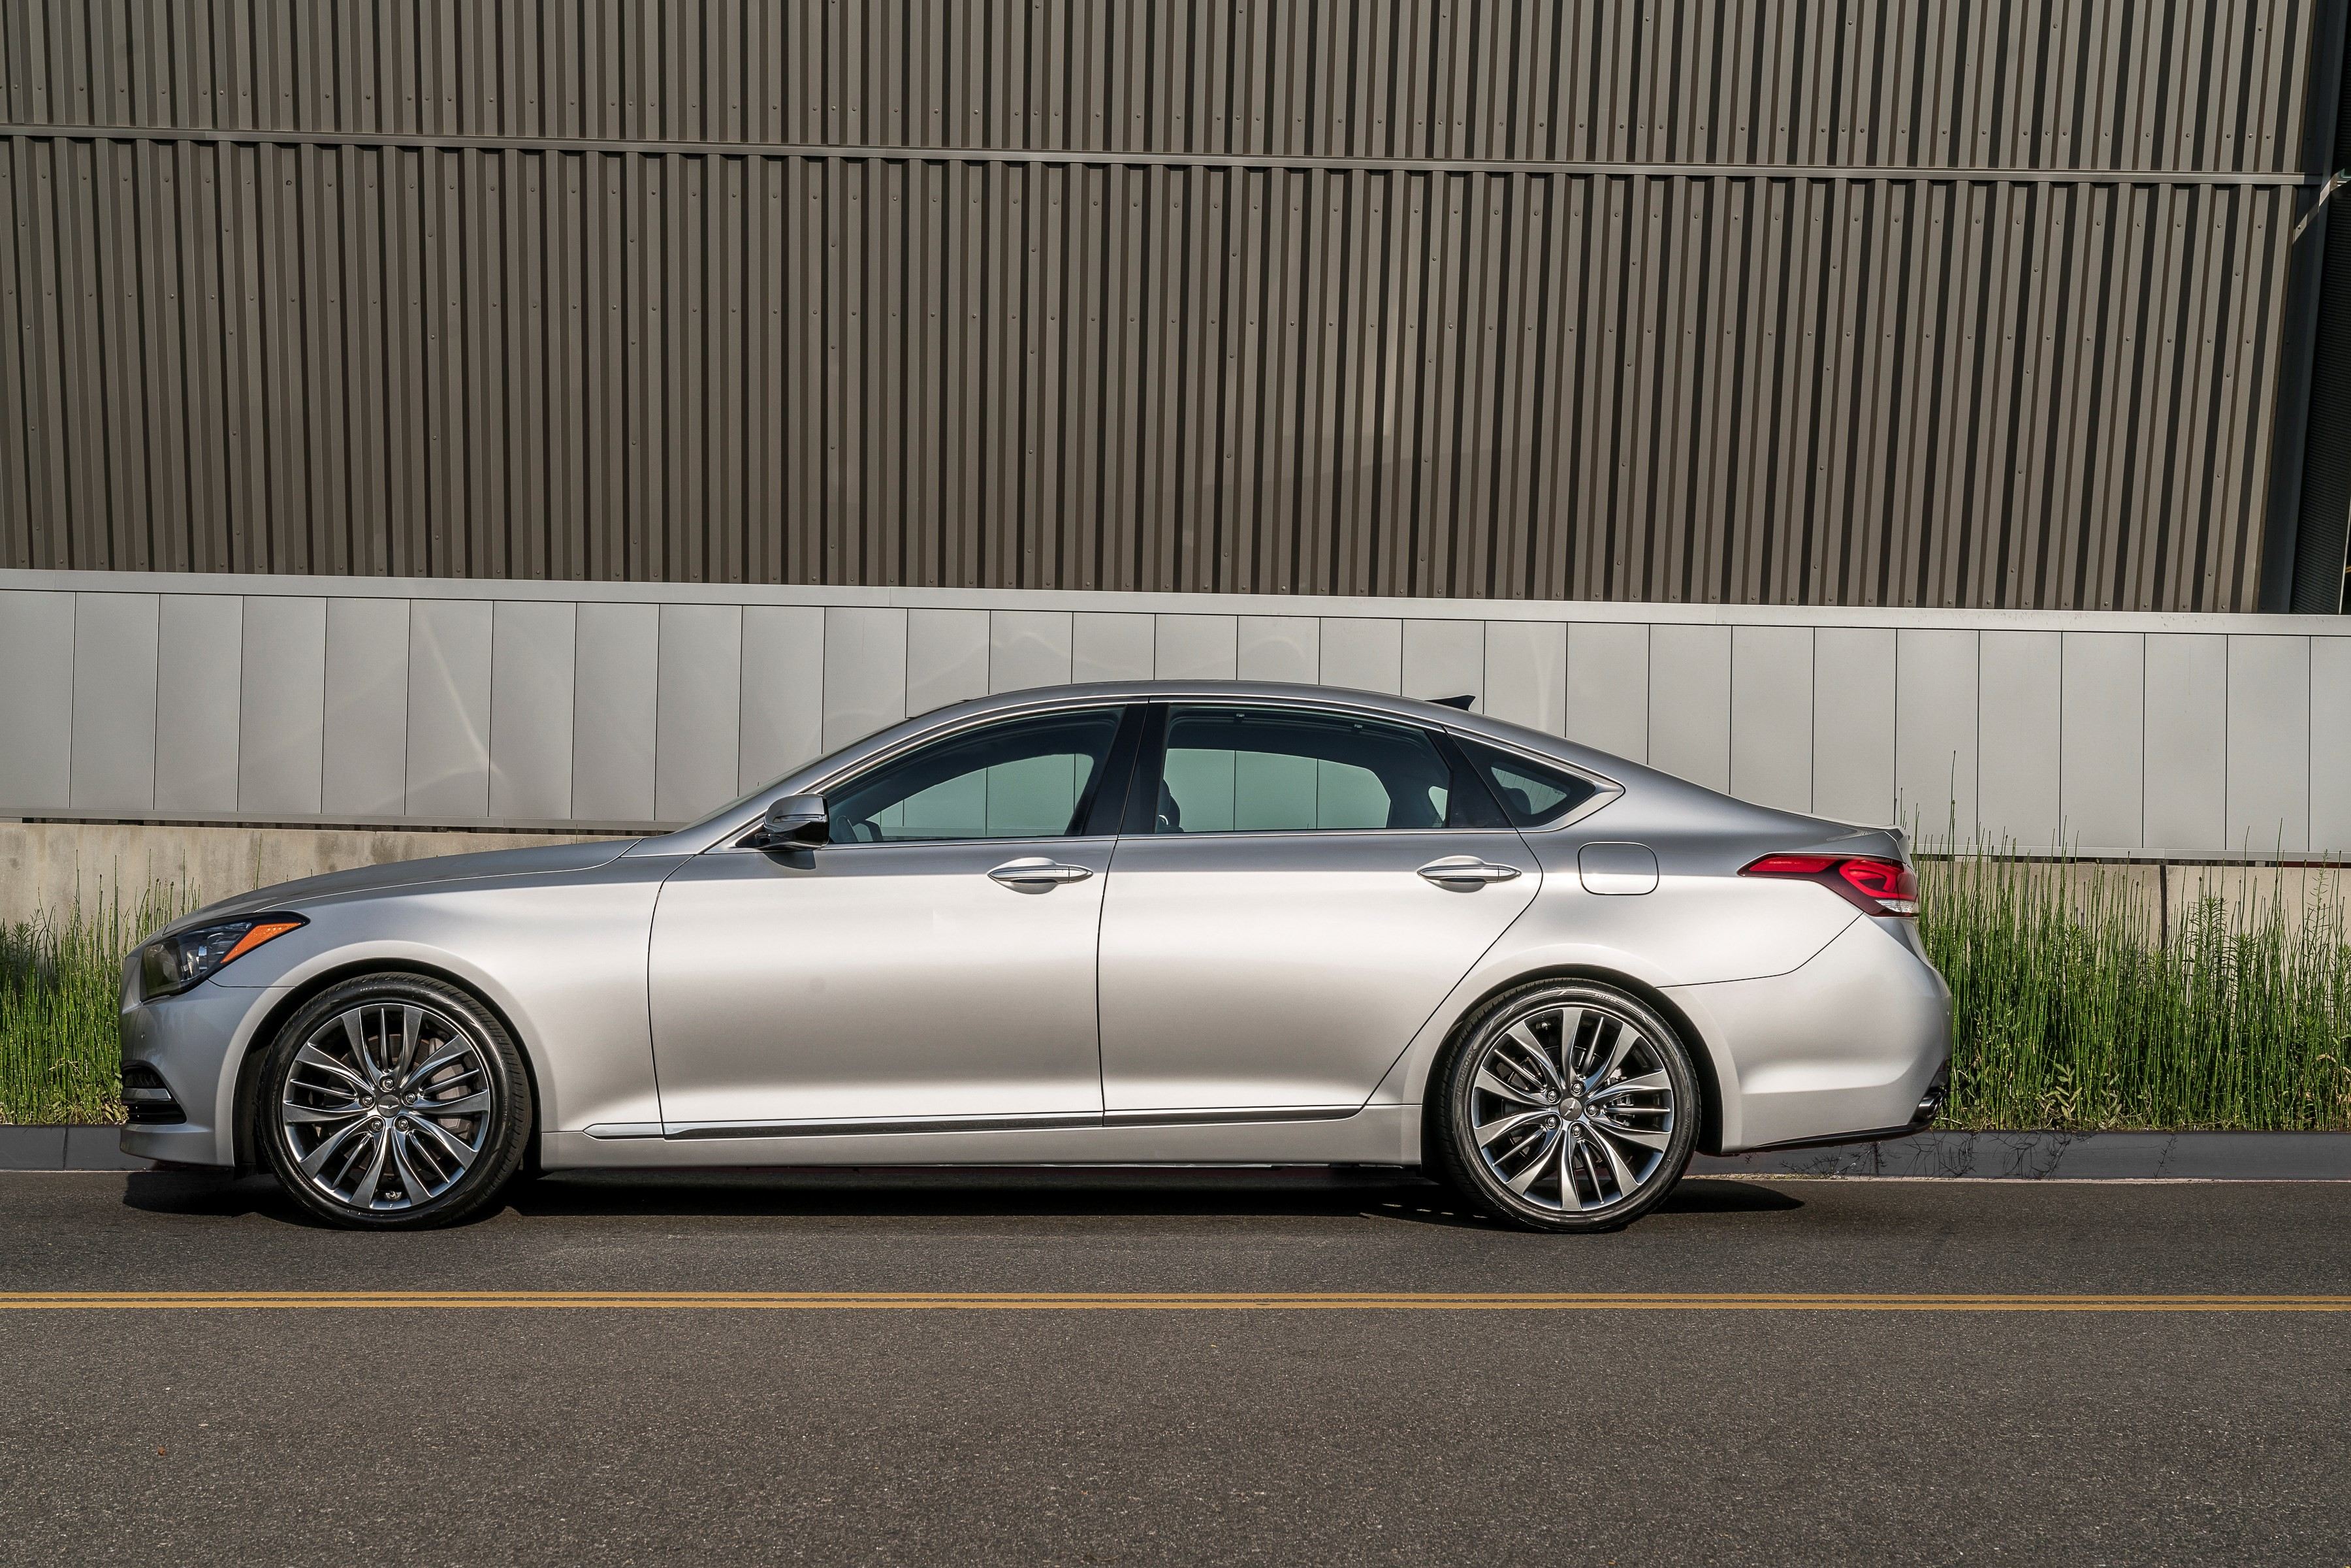 2017 genesis g80 price announced for u s market autoevolution. Black Bedroom Furniture Sets. Home Design Ideas